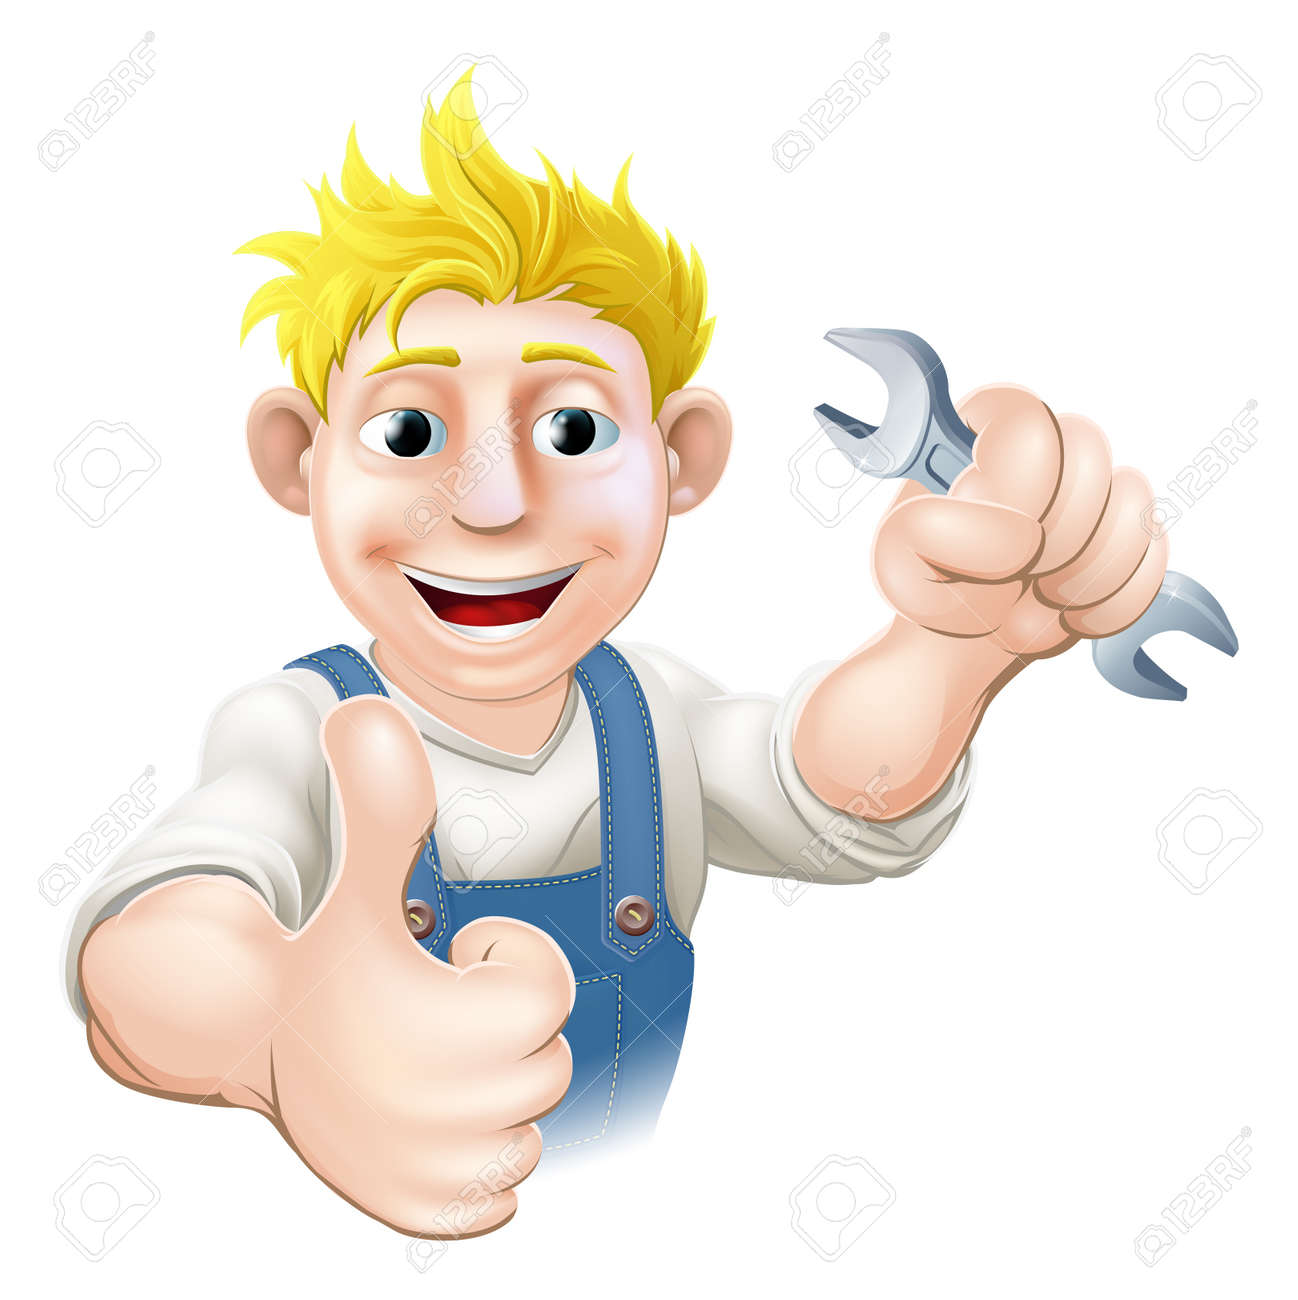 Cartoon mechanic or plumber holding a wrench or spanner and doing a thumbs up gesture Stock Vector - 19595215